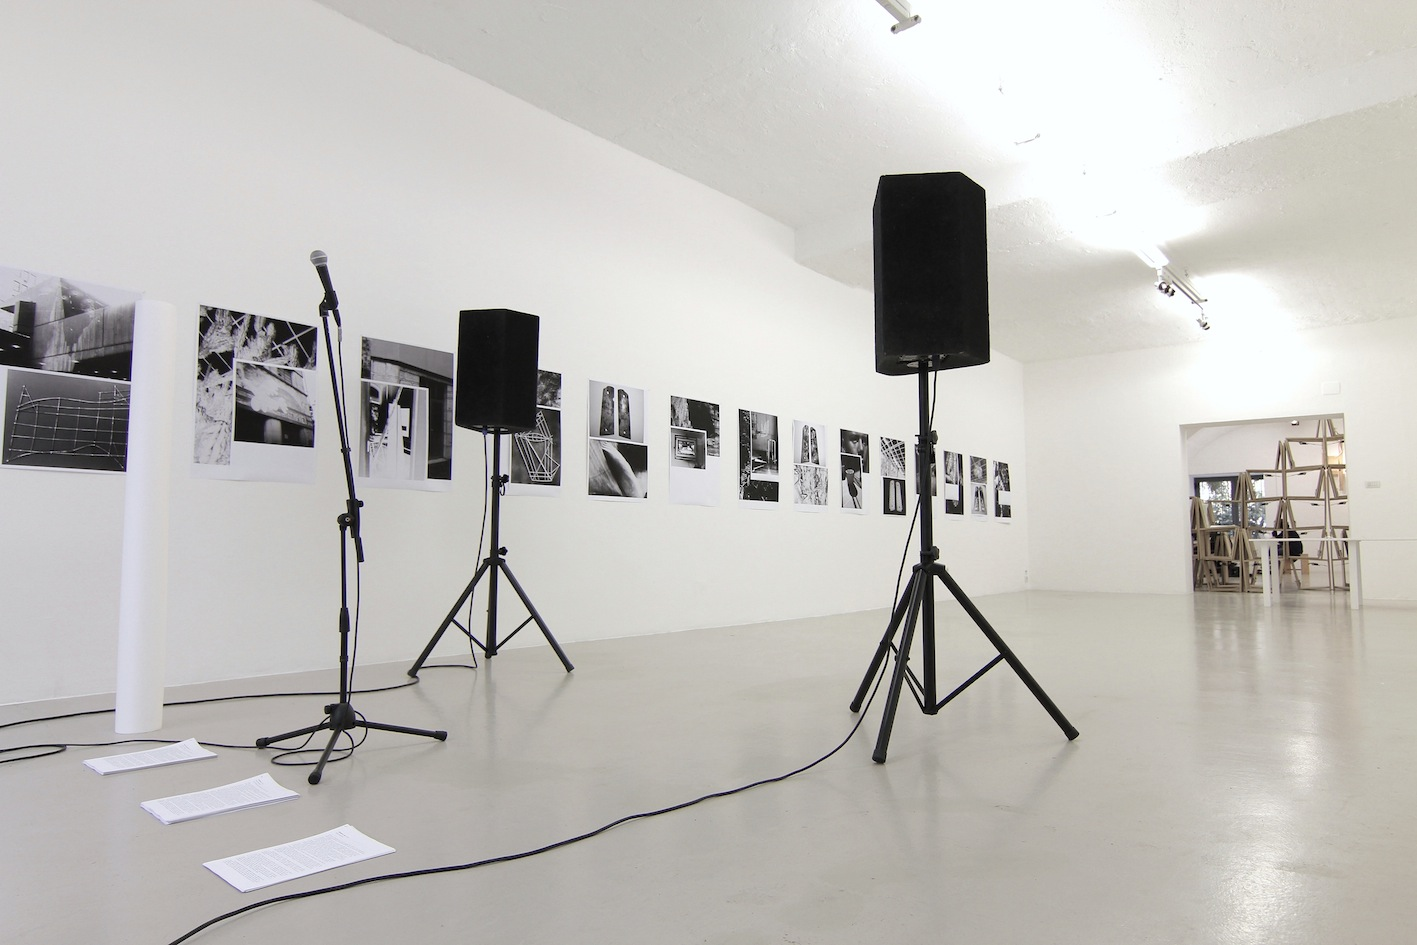 Pedro Barateiro, Endurance  Test, 2012, Installation view, photo Annelie Bortolotti